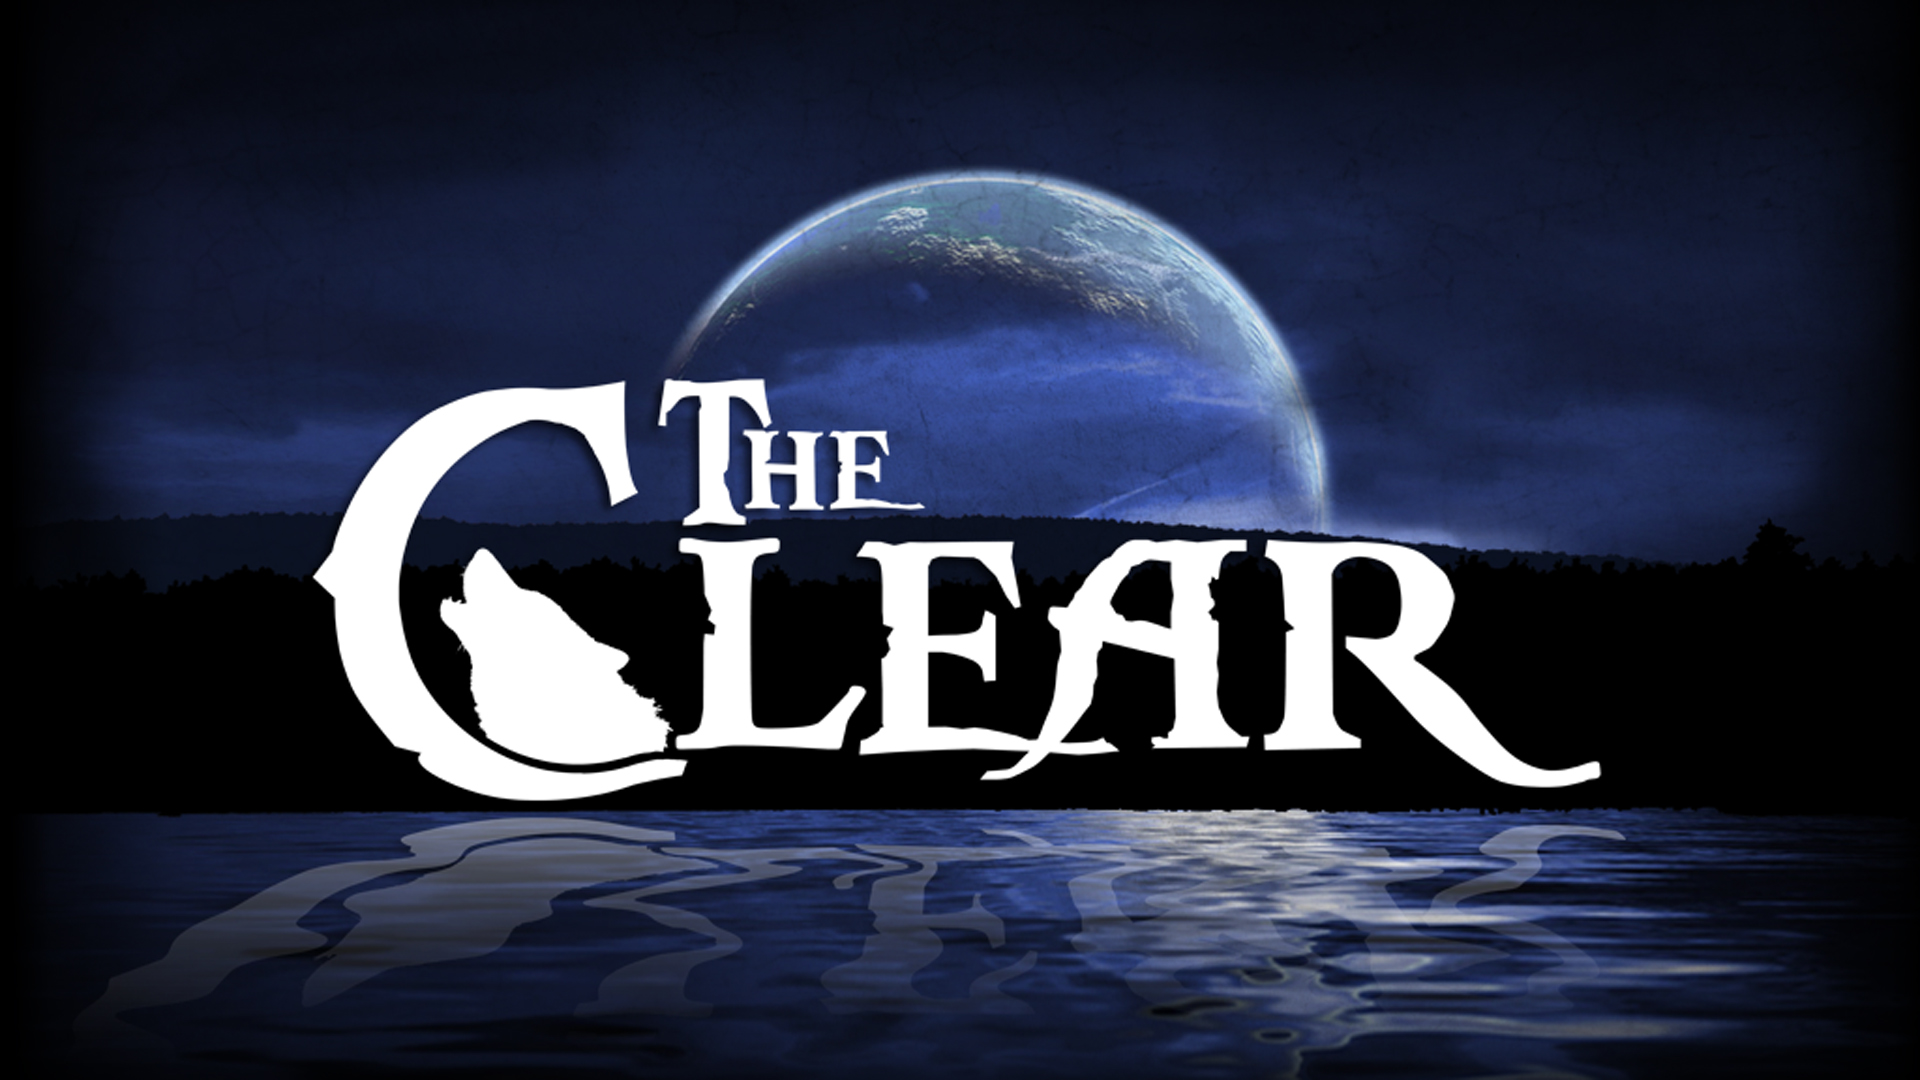 Wallpaper Theclearmoon Profile Movie Facebook Clear - Facebook Profile , HD Wallpaper & Backgrounds